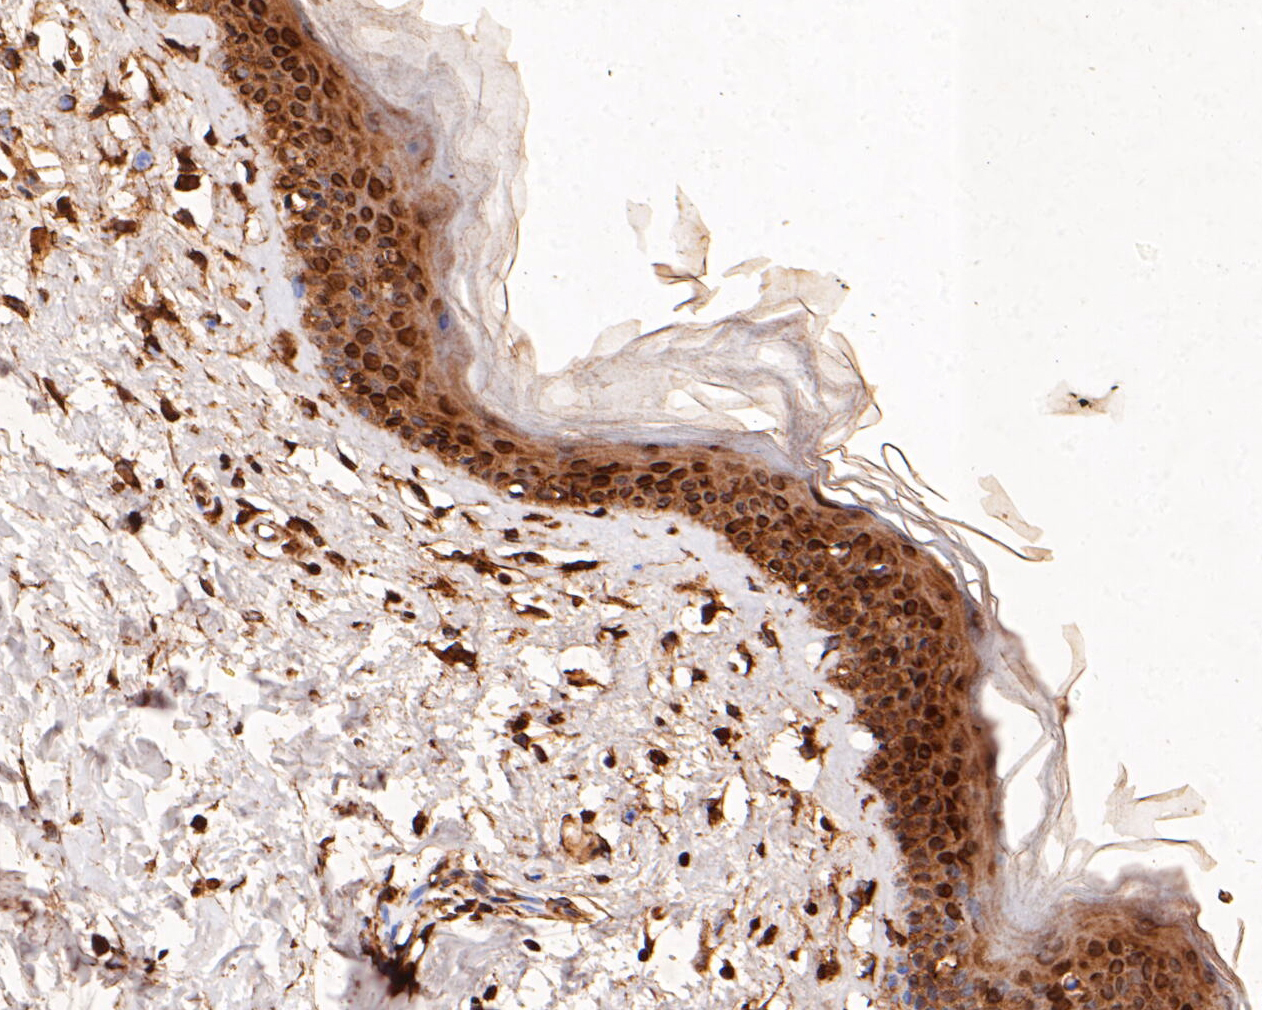 Immunohistochemical analysis of paraffin-embedded human skin tissue using anti-ERK2 antibody. The section was pre-treated using heat mediated antigen retrieval with sodium citrate buffer (pH 6.0) for 20 minutes. The tissues were blocked in 5% BSA for 30 minutes at room temperature, washed with ddH2O and PBS, and then probed with the primary antibody (EM1901-53, 1/100)  for 30 minutes at room temperature. The detection was performed using an HRP conjugated compact polymer system. DAB was used as the chromogen. Tissues were counterstained with hematoxylin and mounted with DPX.